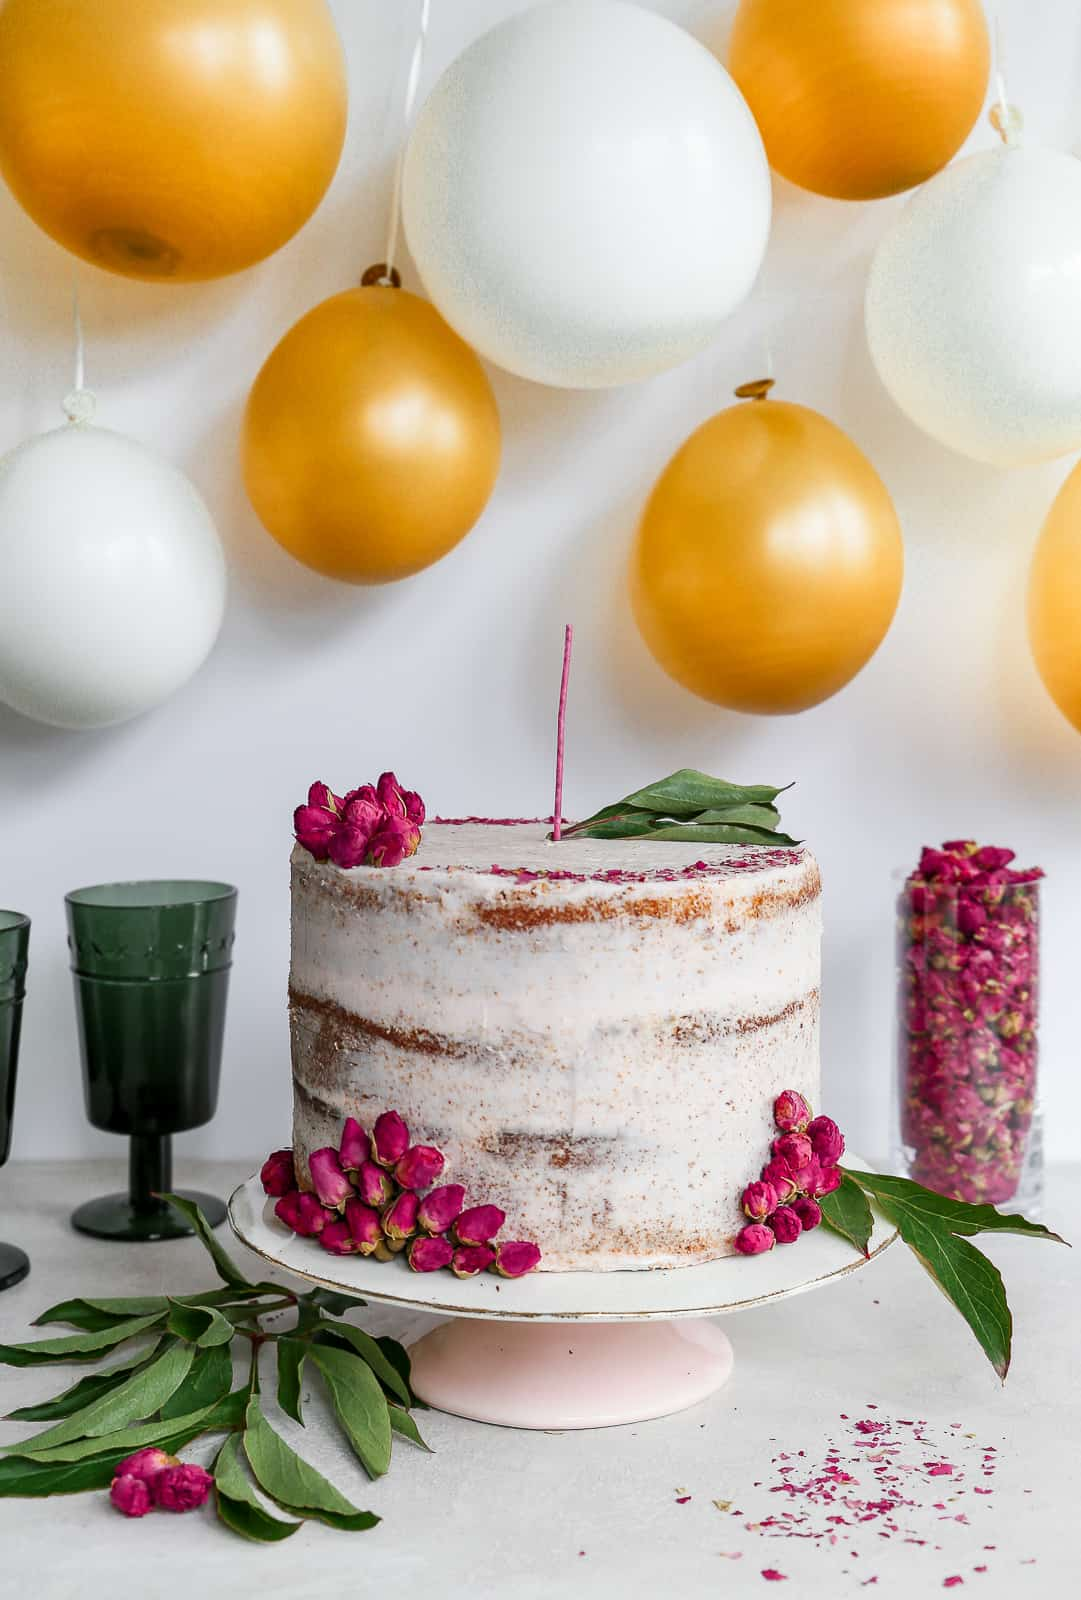 This Spiced Orange Cardamom Cake Is Filled And Covered With A Sweet Rose Buttercream Garnished The Most Delicate Dried Rosebuds